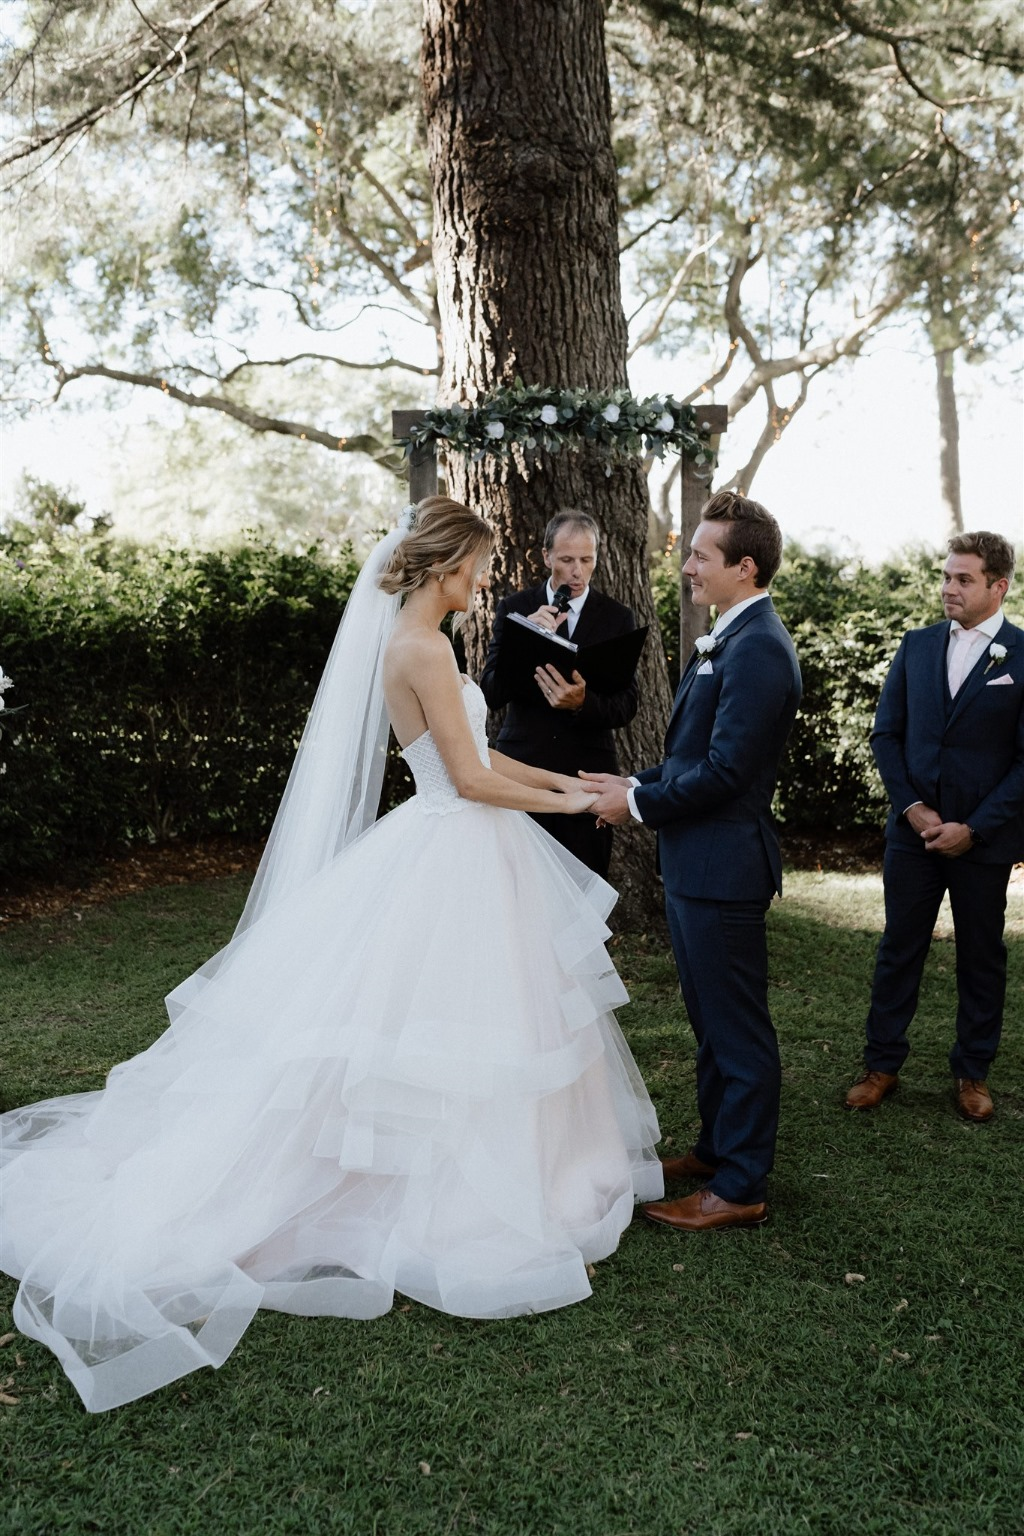 A fairy tale wedding at Gabbinbar Homestead with Celebrant Jamie Eastgate of Brisbane Coty Celebrants. View the full real wedding blog